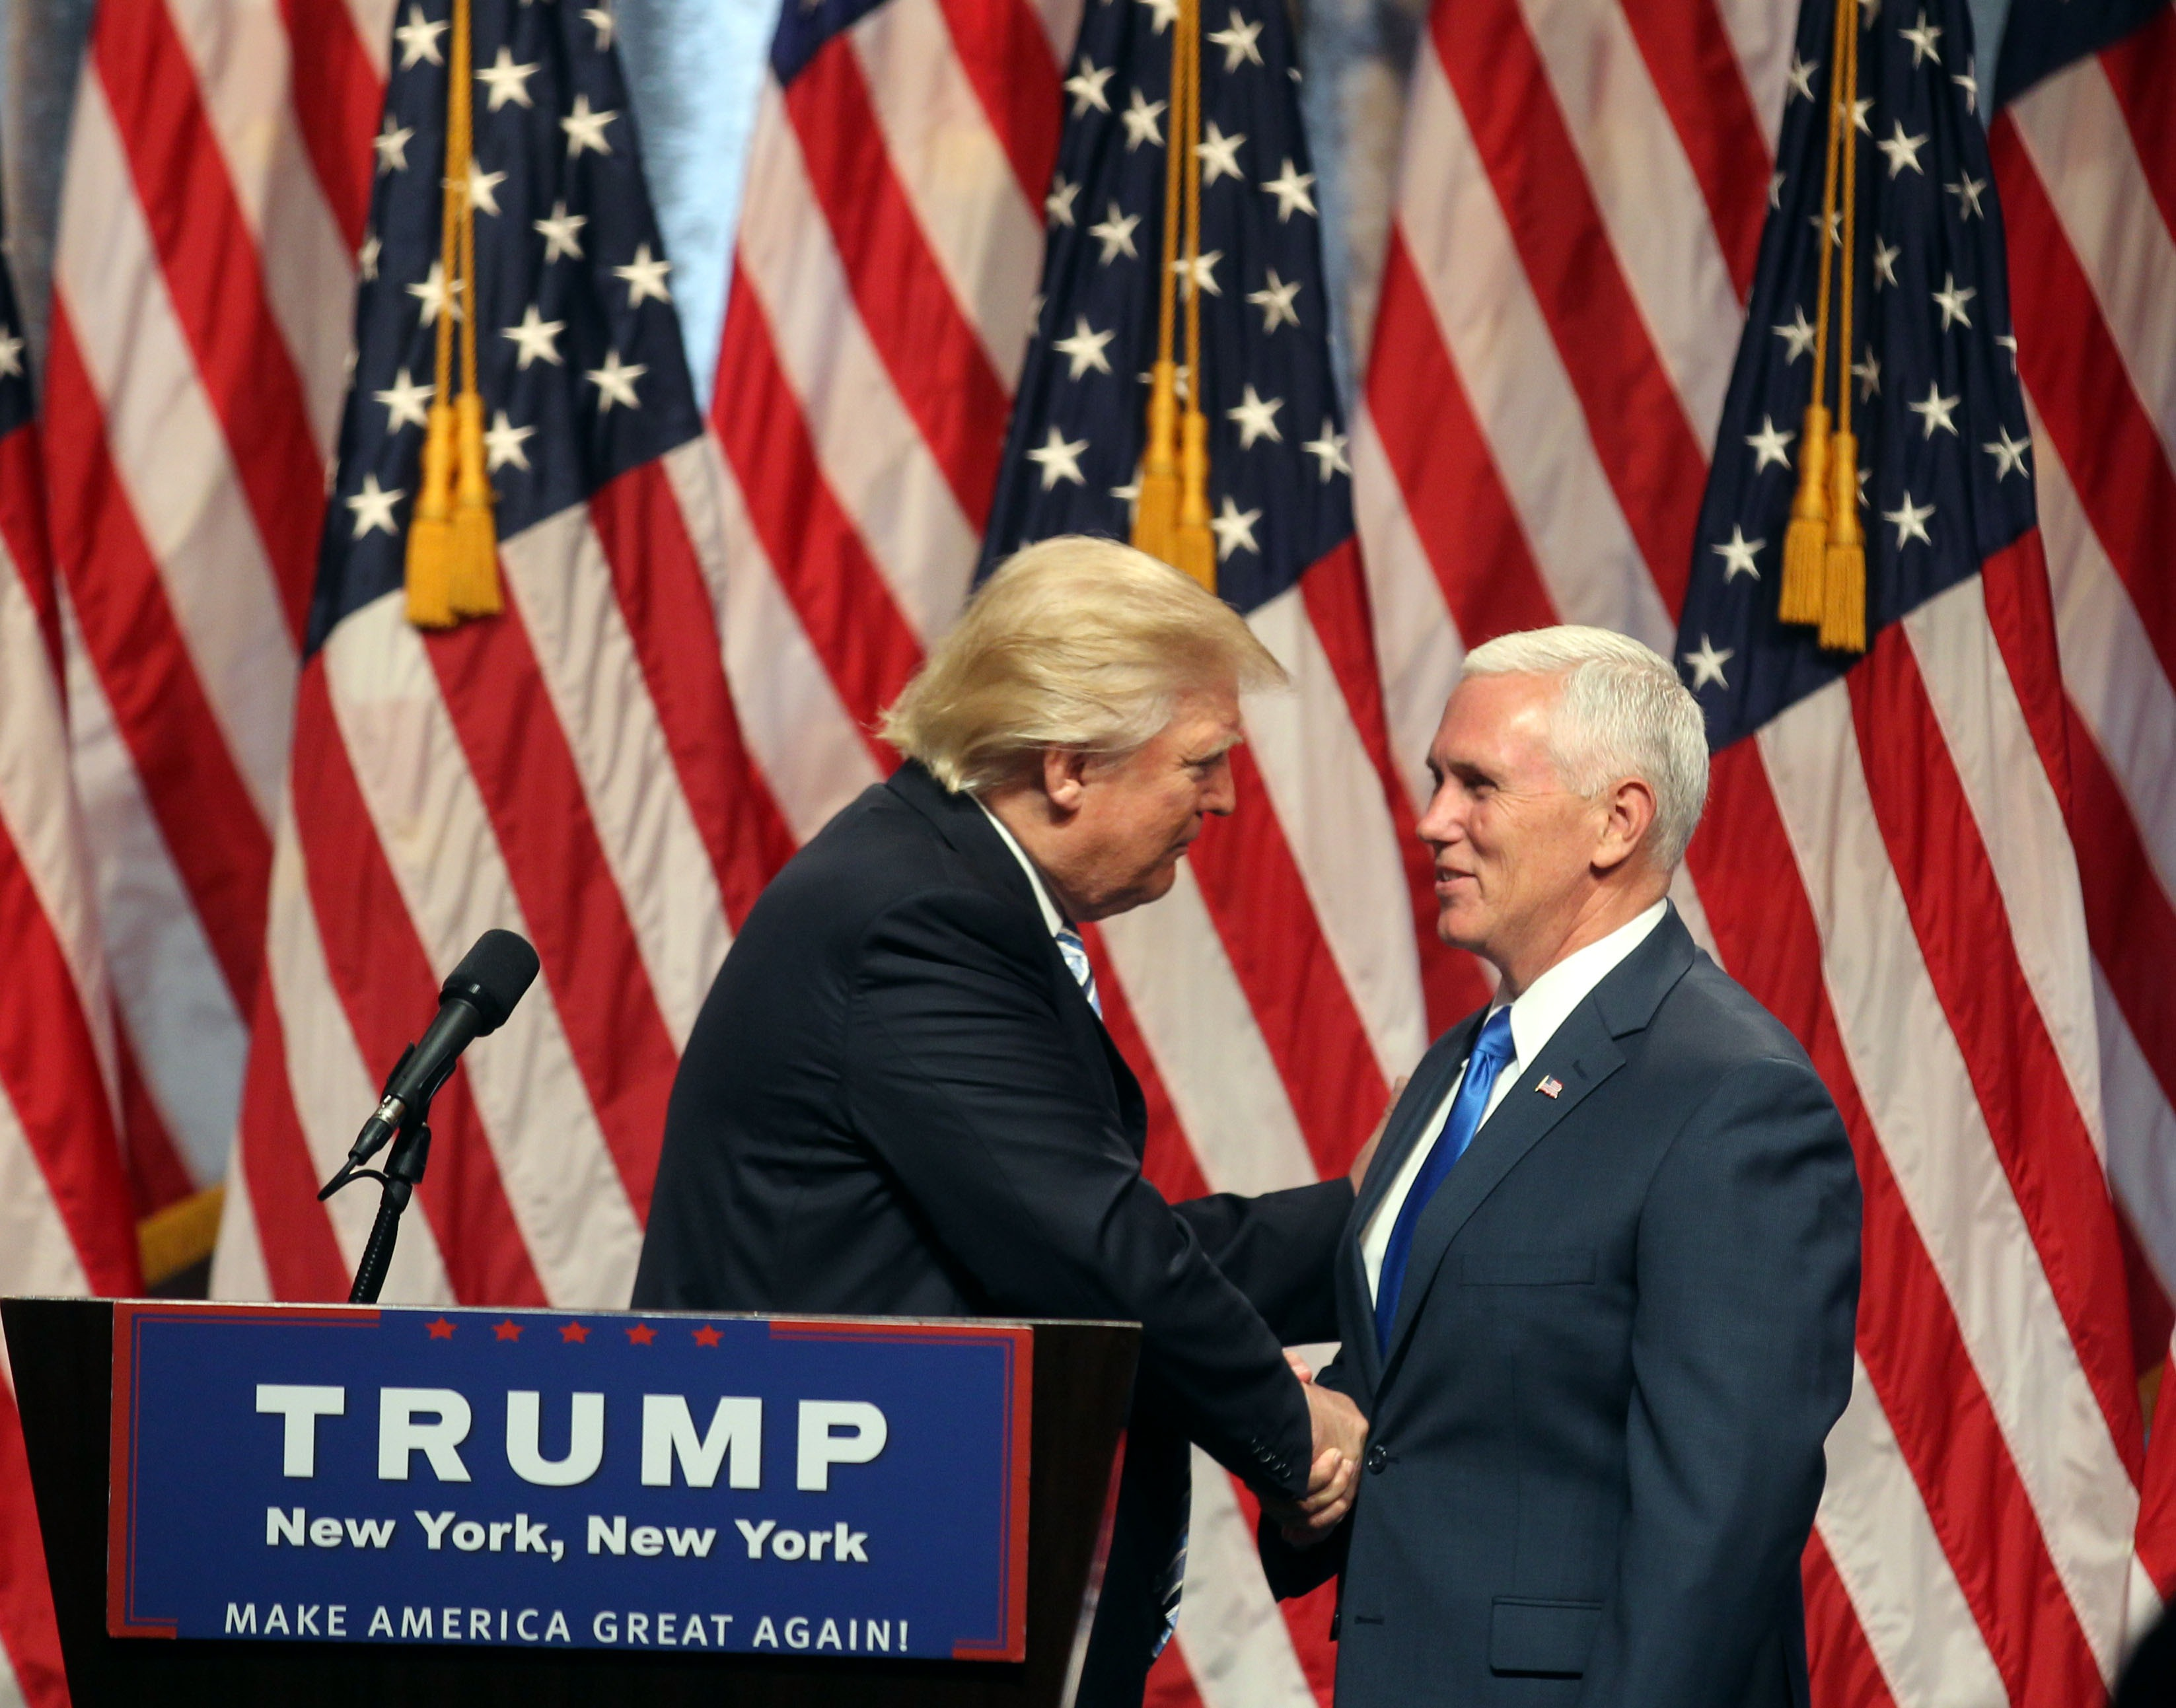 Donald Trump introduces Indiana Gov. Mike Pence as his vice presidential running mate at a press conference at the Hilton Hotel on July 16, 2016 in New York City.